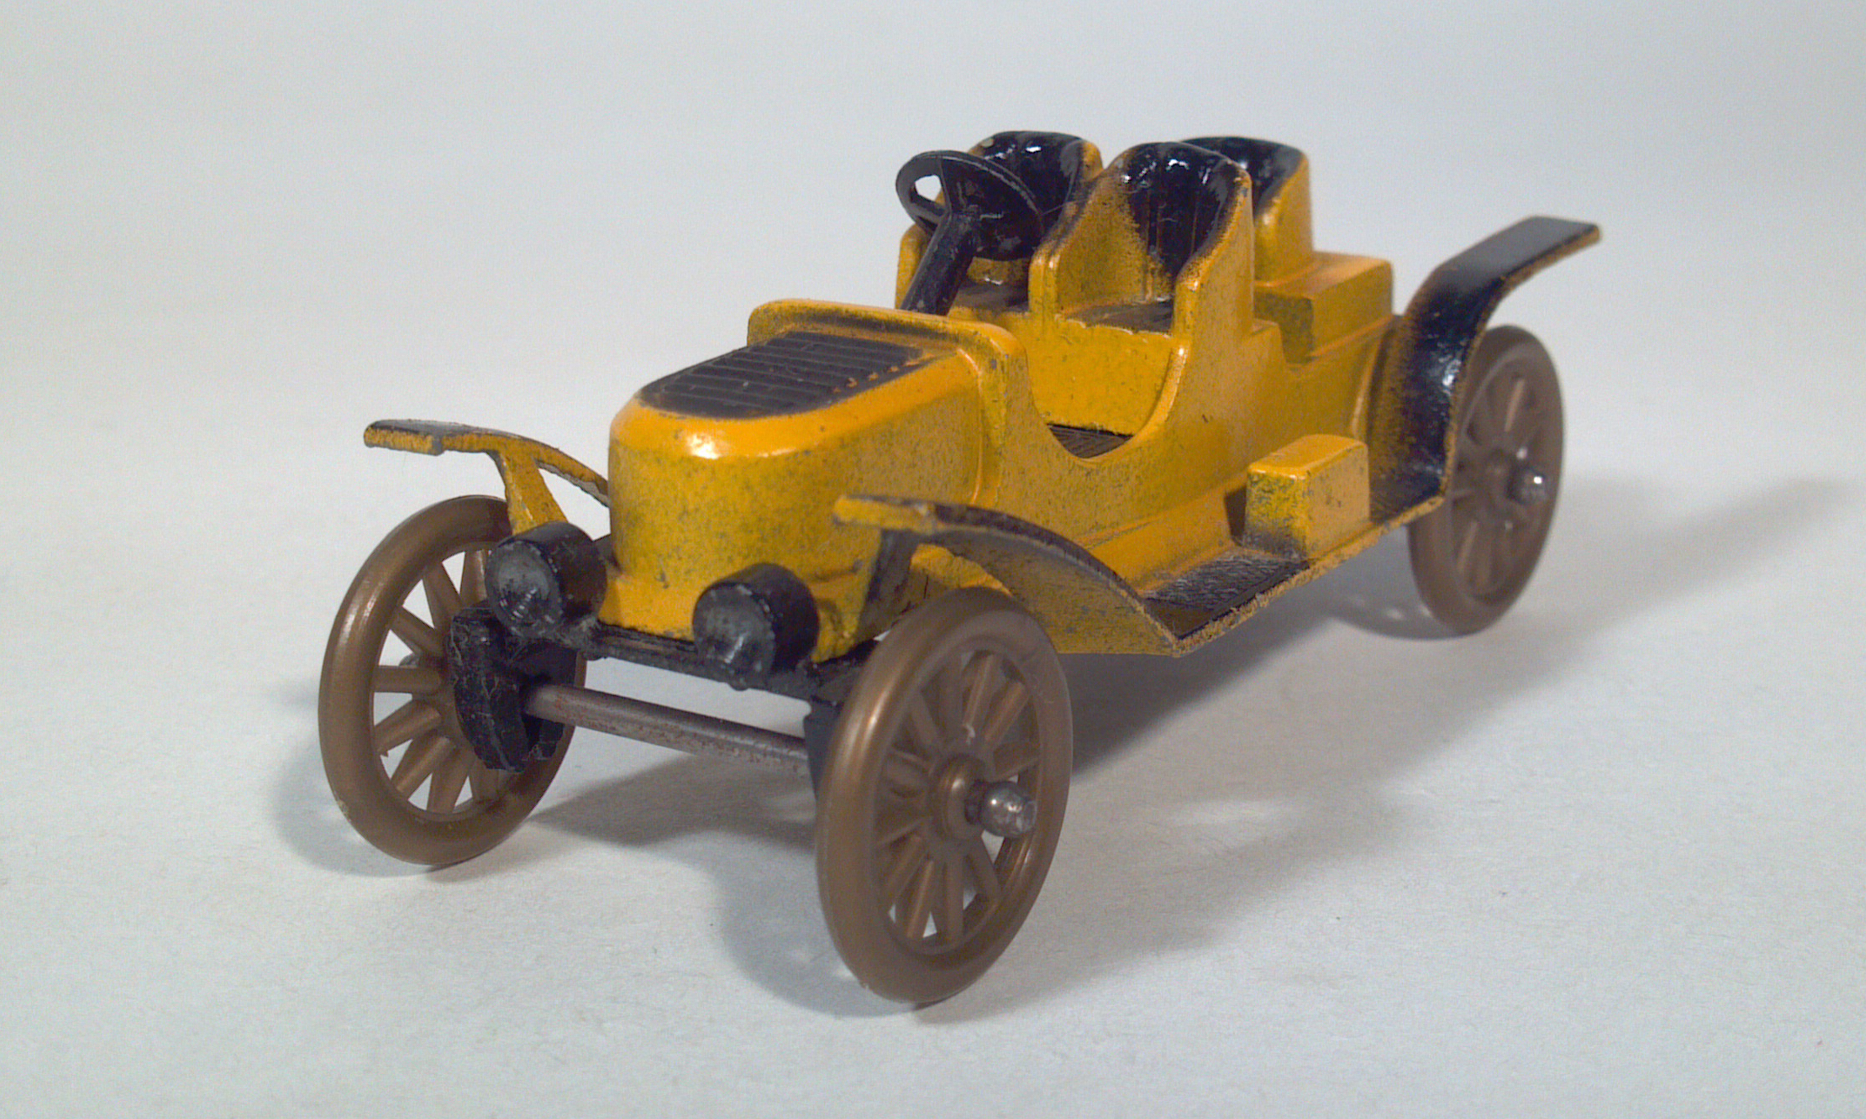 Tootsietoy Classic Series Diecast Scale Models/Toy Cars